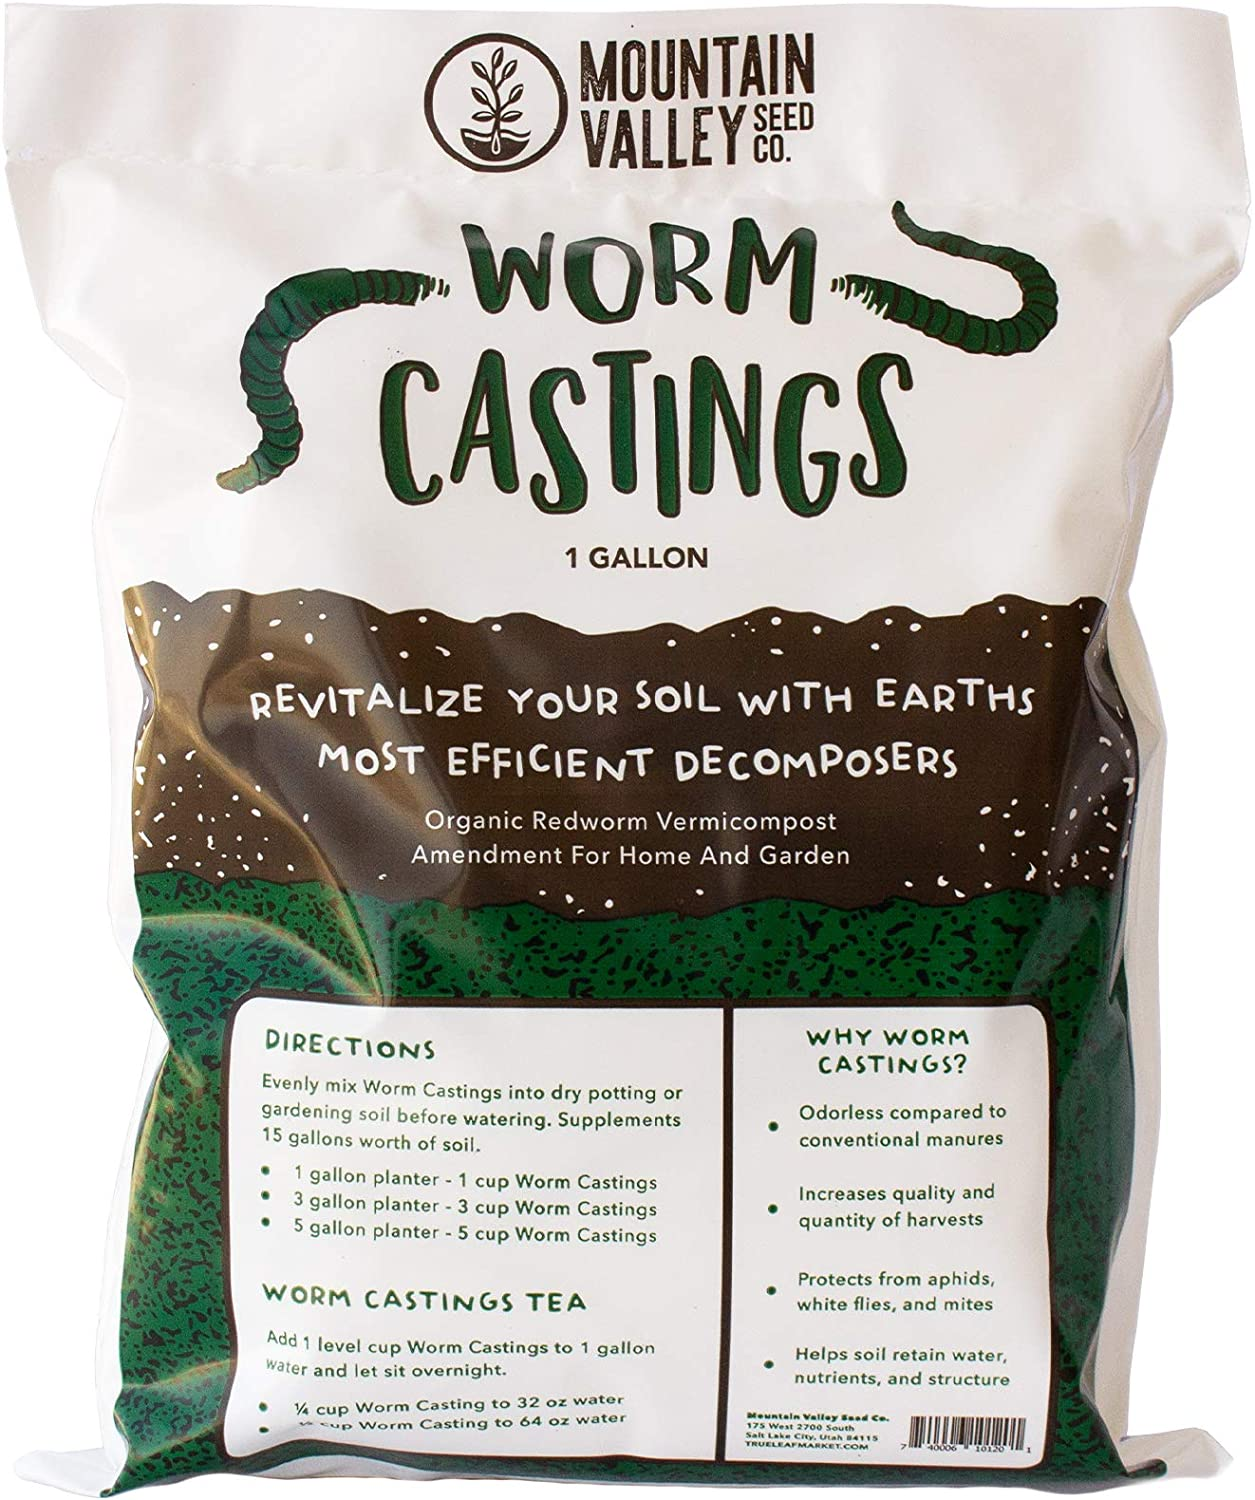 Earth Worm Castings – Organic Red Worm Compost Soil Amendment - .13 Cubic Foot ~6 Lbs - Approximately 1 Gallon - Organic Red Worm Vermiculture and Compost Home, Garden, Greenhouse, and Farm